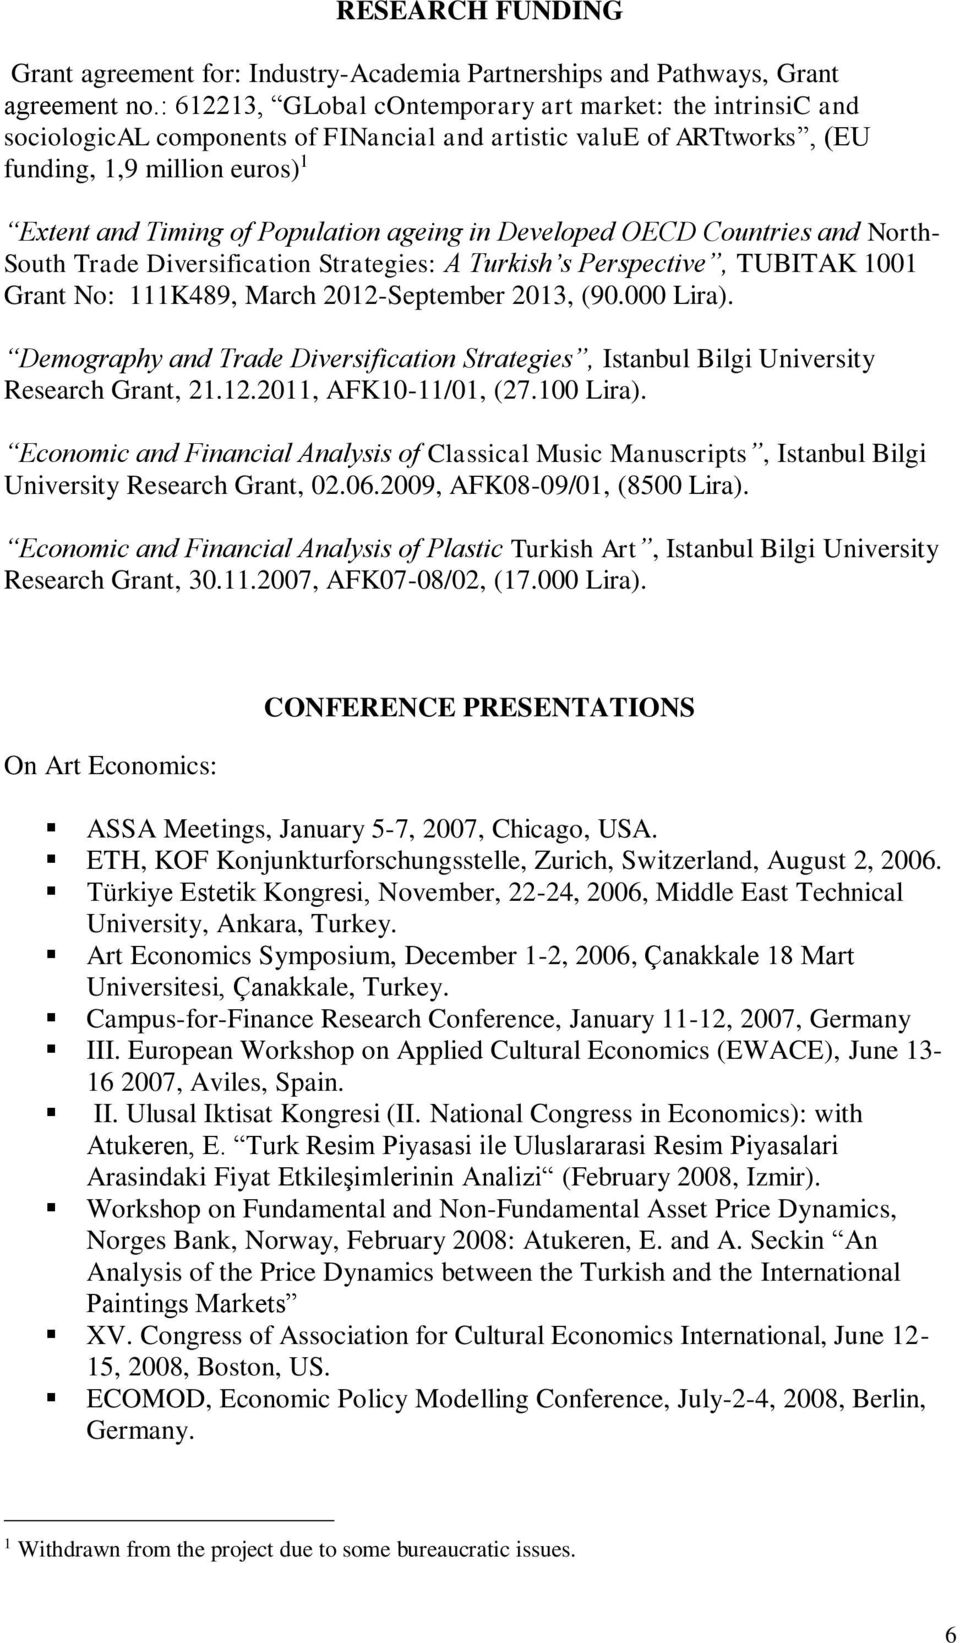 ageing in Developed OECD Countries and North- South Trade Diversification Strategies: A Turkish s Perspective, TUBITAK 1001 Grant No: 111K489, March 2012-September 2013, (90.000 Lira).